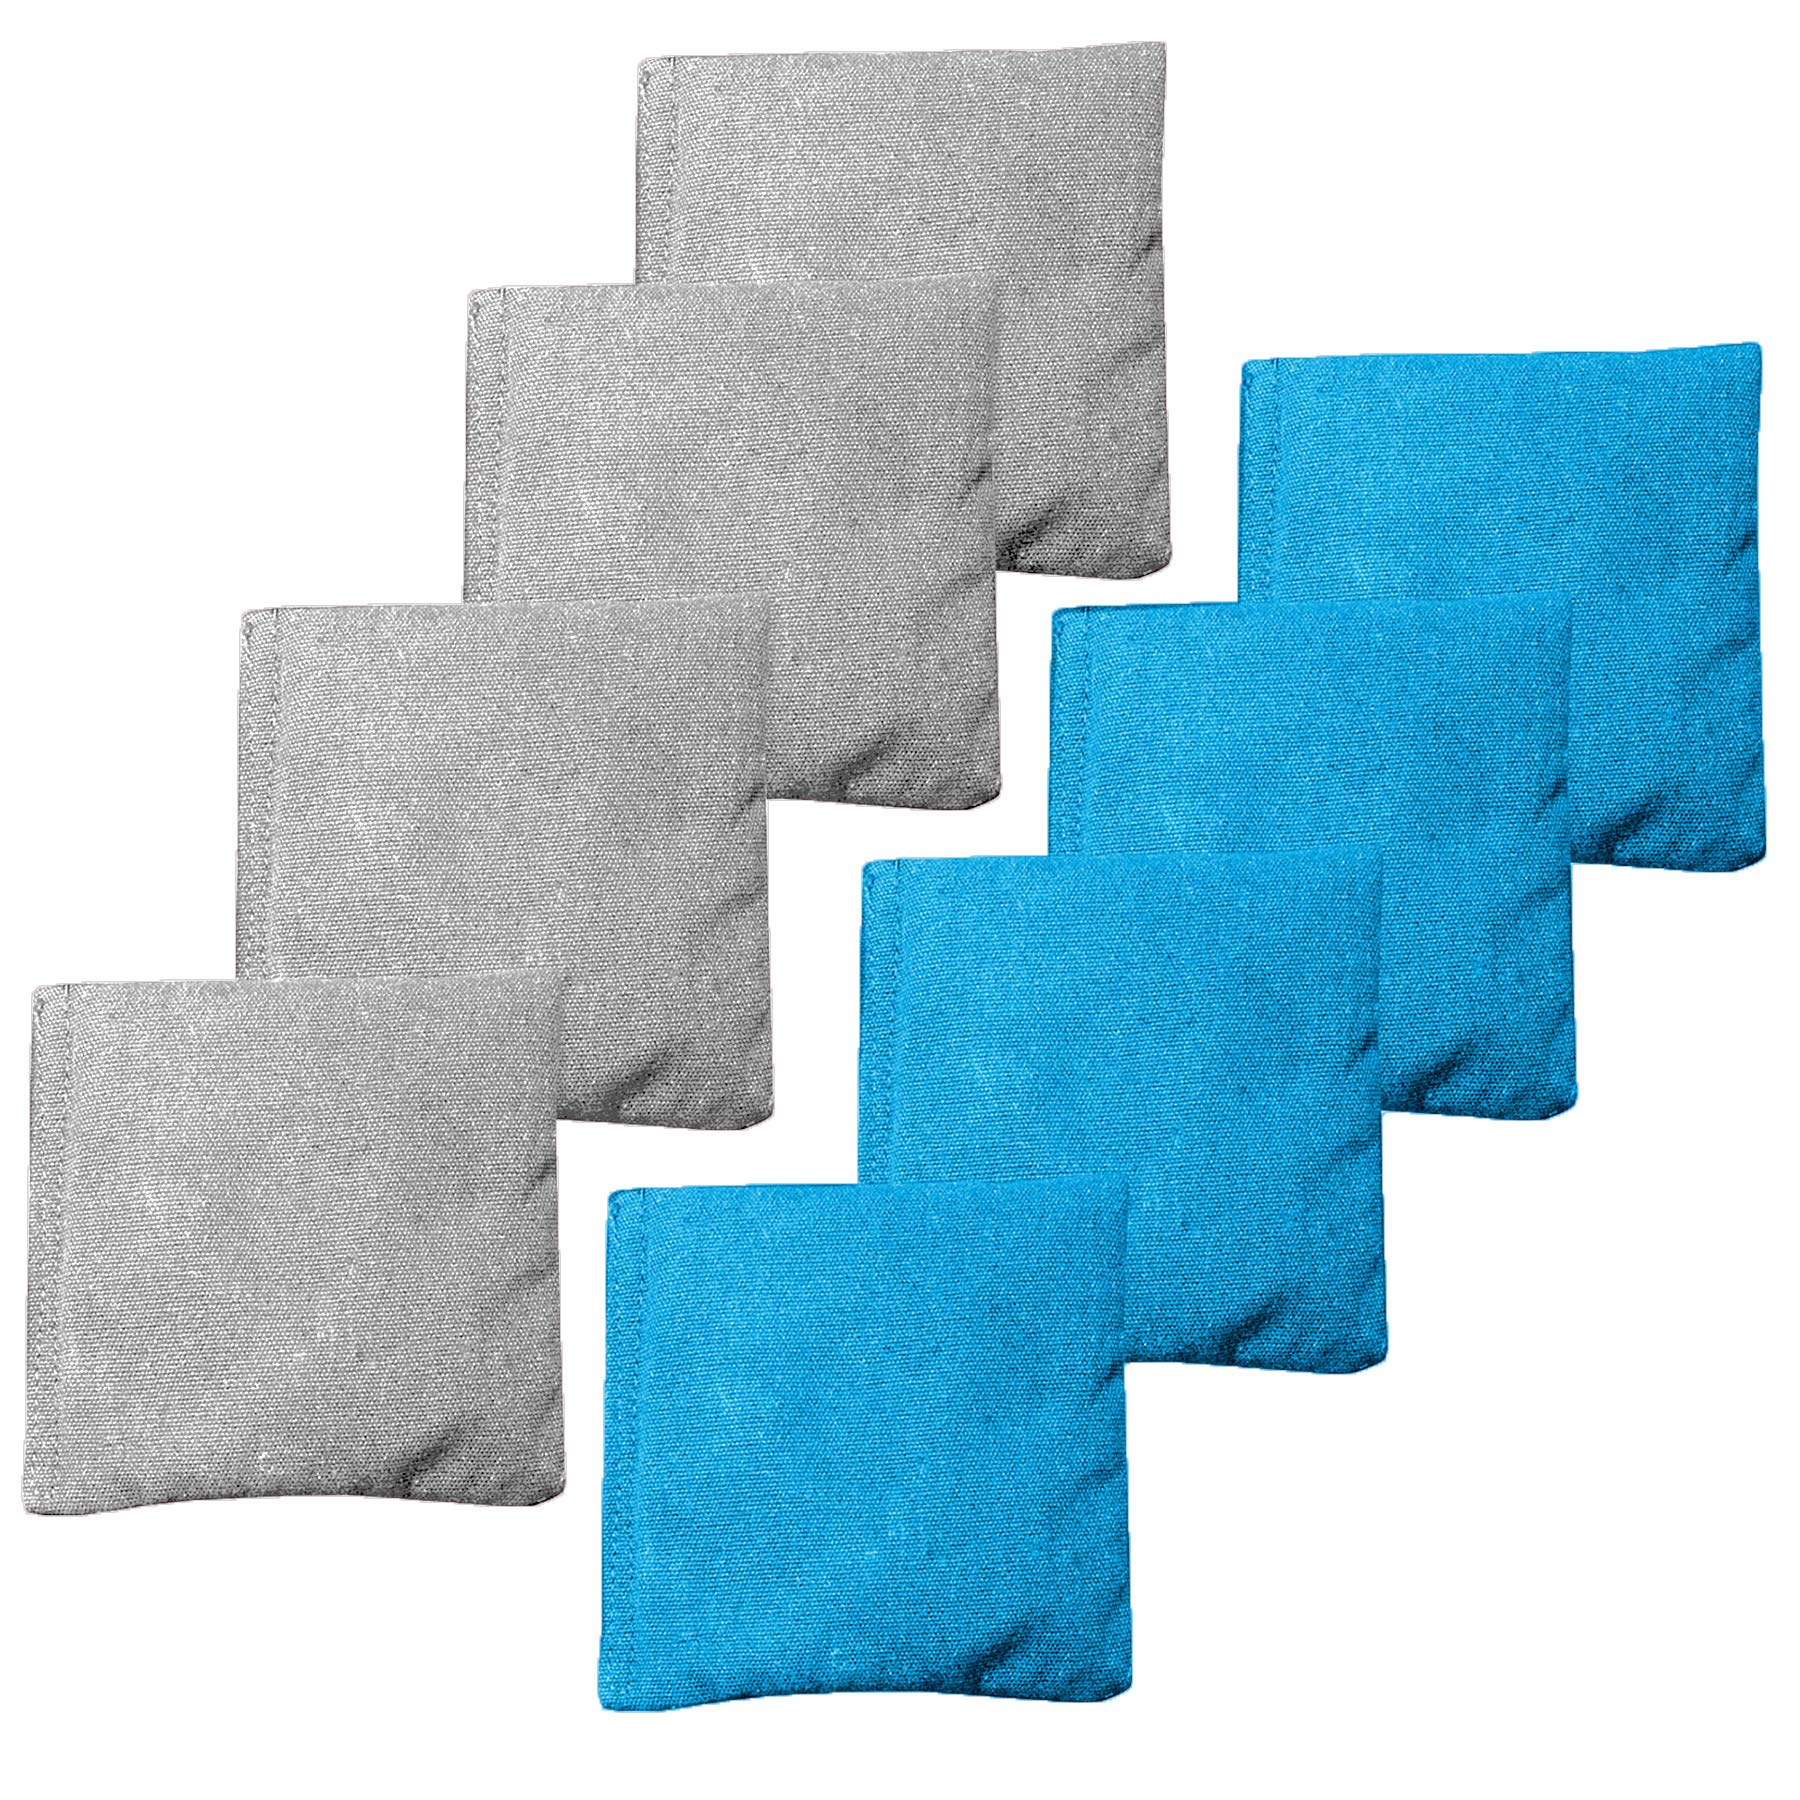 Weather Resistant Cornhole Bean Bags Set of 8 - Regulation Size & Weight - Light Blue & Gray by Play Platoon